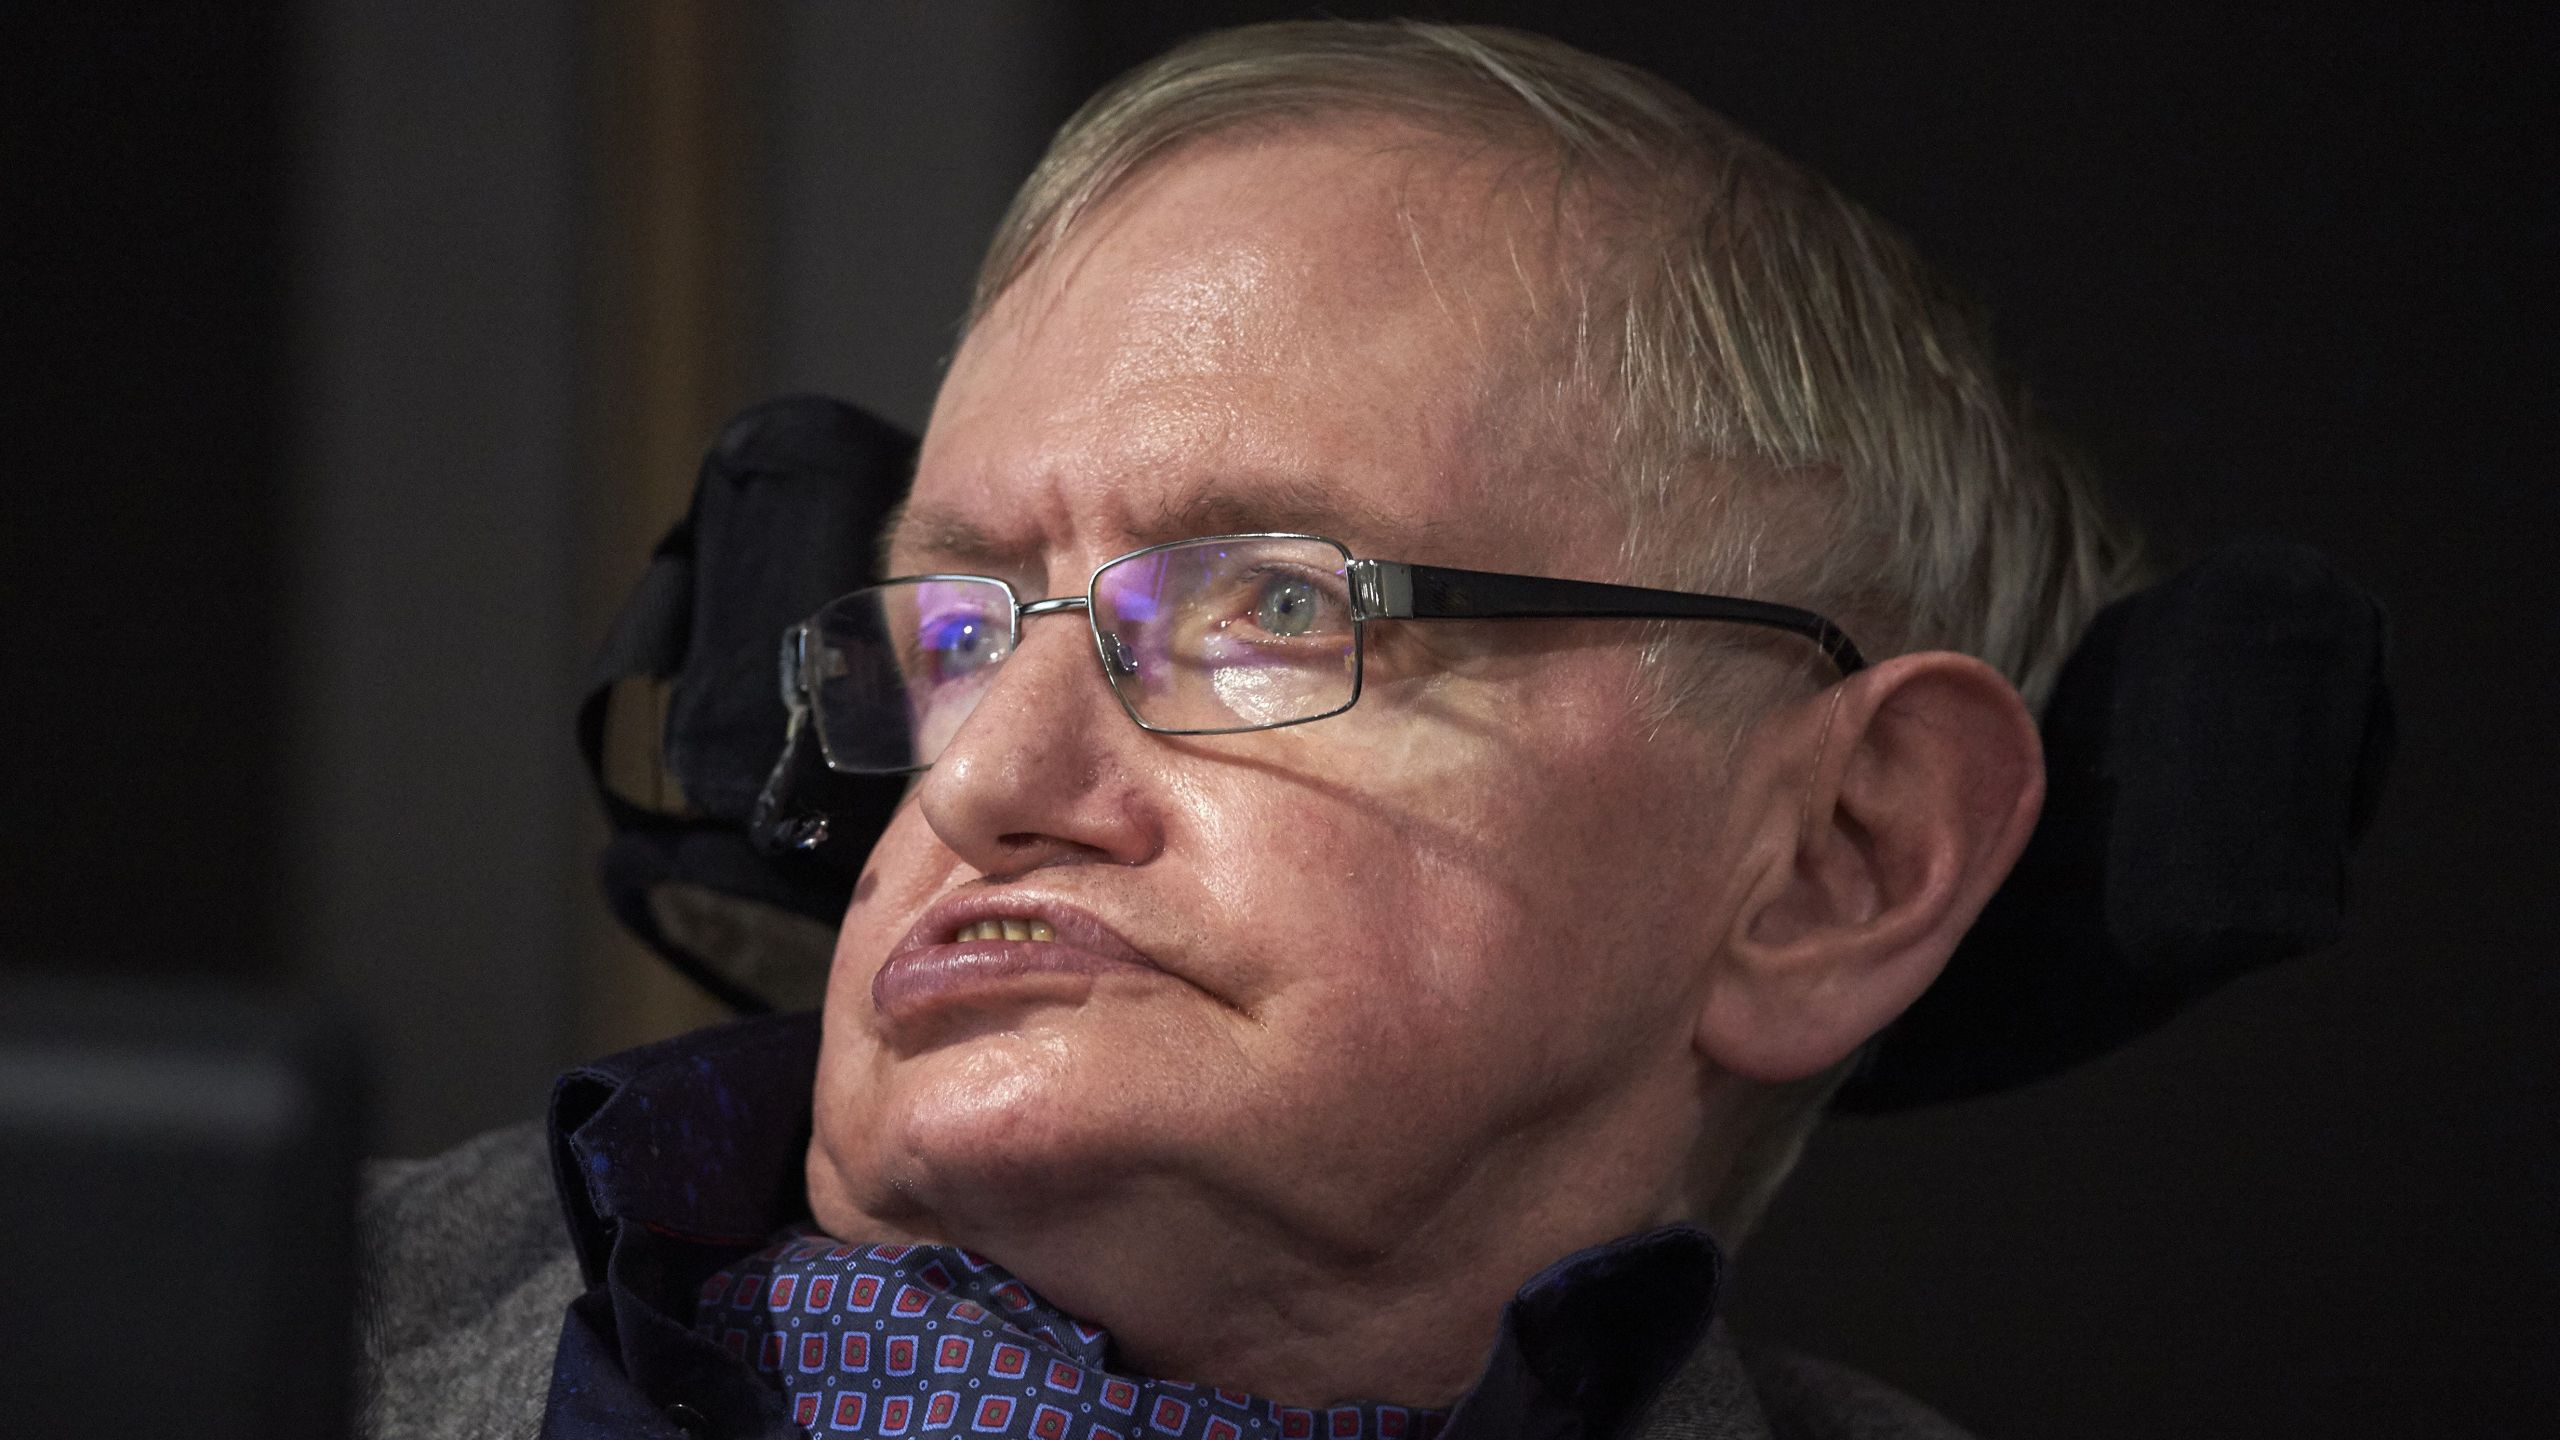 British scientist Stephen Hawking attends the launch of The Leverhulme Centre for the Future of Intelligence (CFI) at the University of Cambridge, in Cambridge, eastern England, on October 19, 2016. (Credit: NIKLAS HALLE'N/AFP/Getty Images)